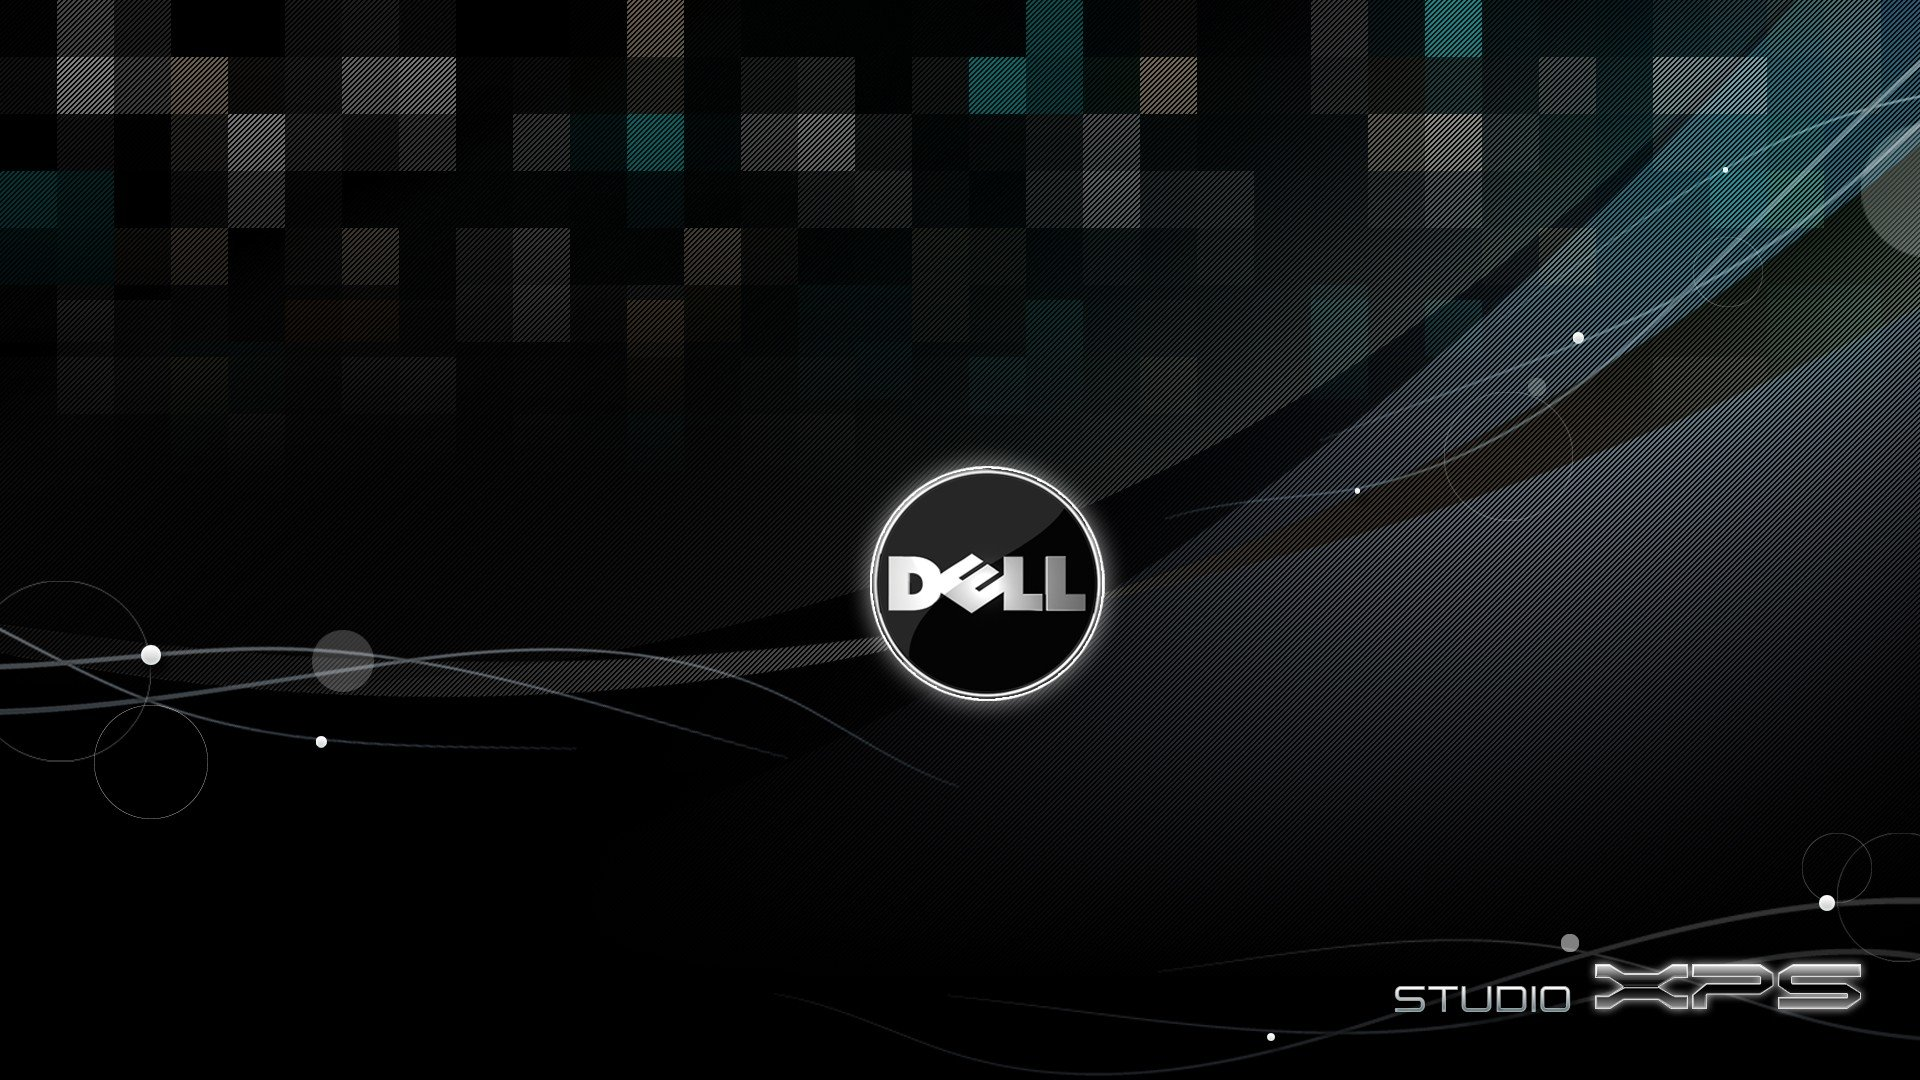 Hd Dell Backgrounds Dell Wallpaper Images For Windows: Dell, Computer, Hardware HD Wallpapers / Desktop And